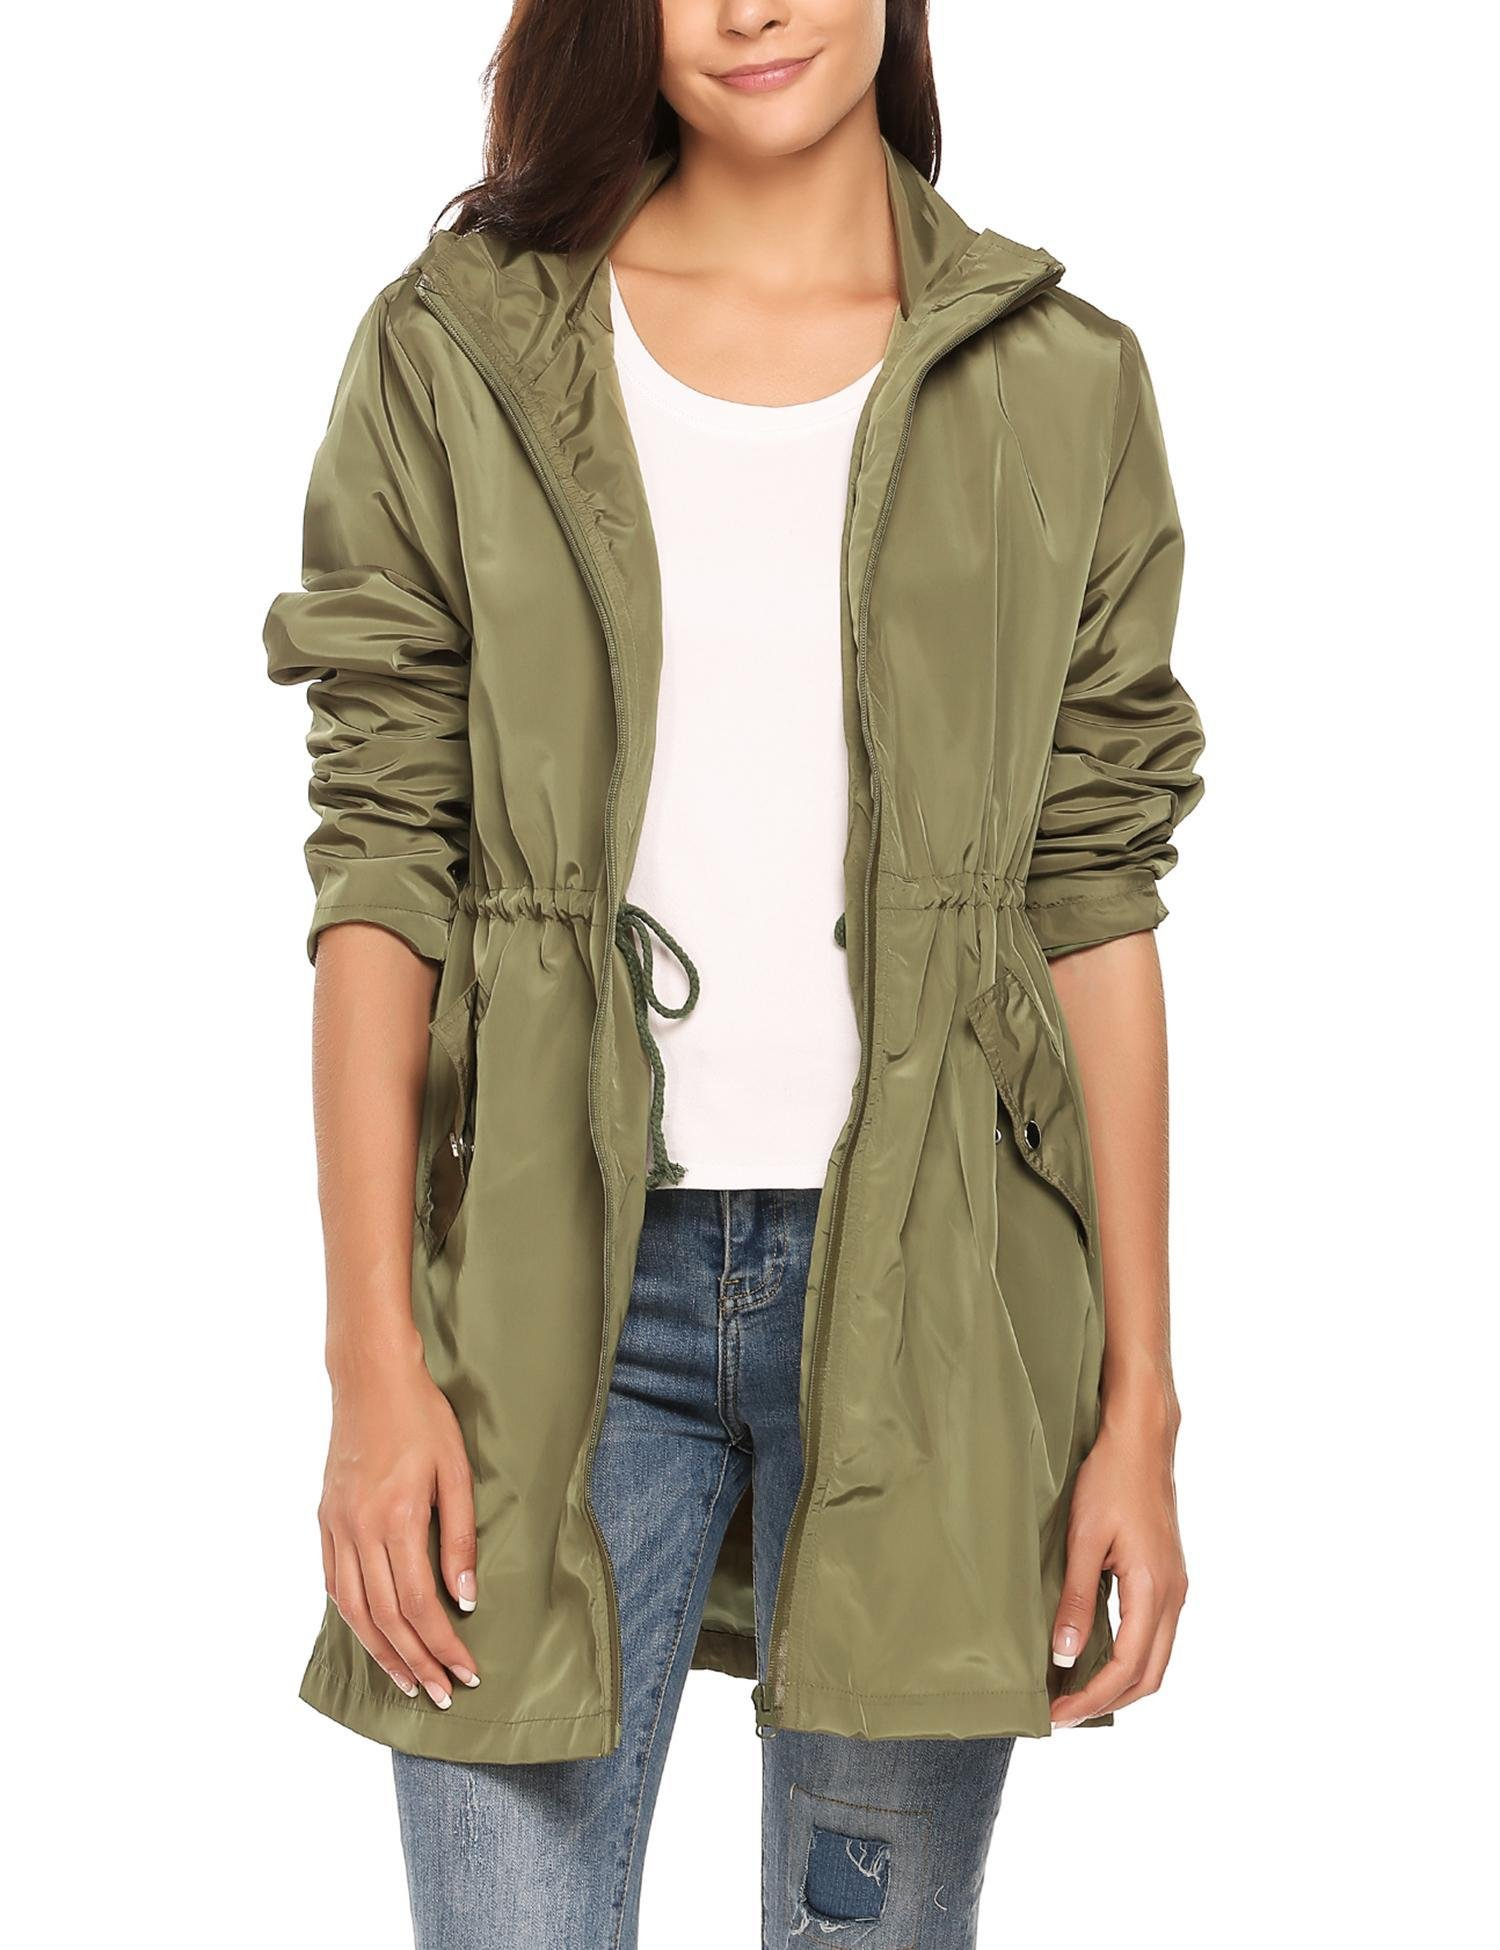 Zeagoo Women Long Style Waterproof Hooded Raincoat Clothing Rainwear Rain Jacket Army Green L